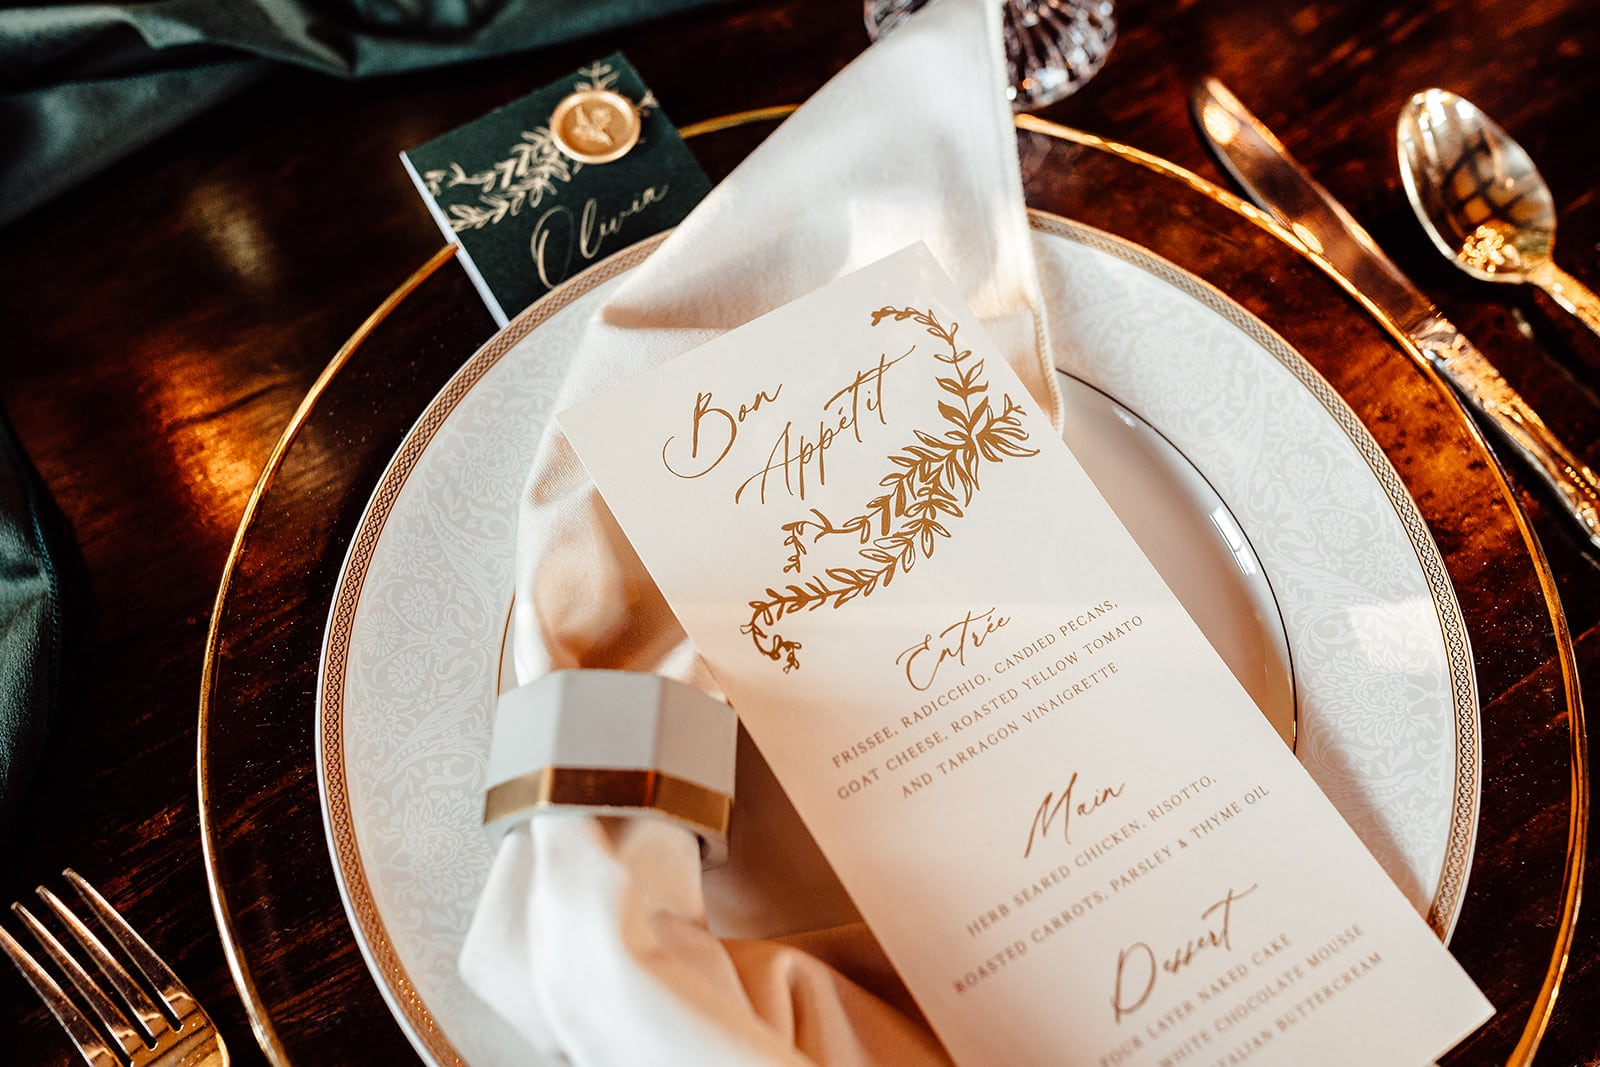 close up of gold and white dinner plate with gold flatware around is with napkin in ring on the edge of the plate and hand designed dinner menu on top